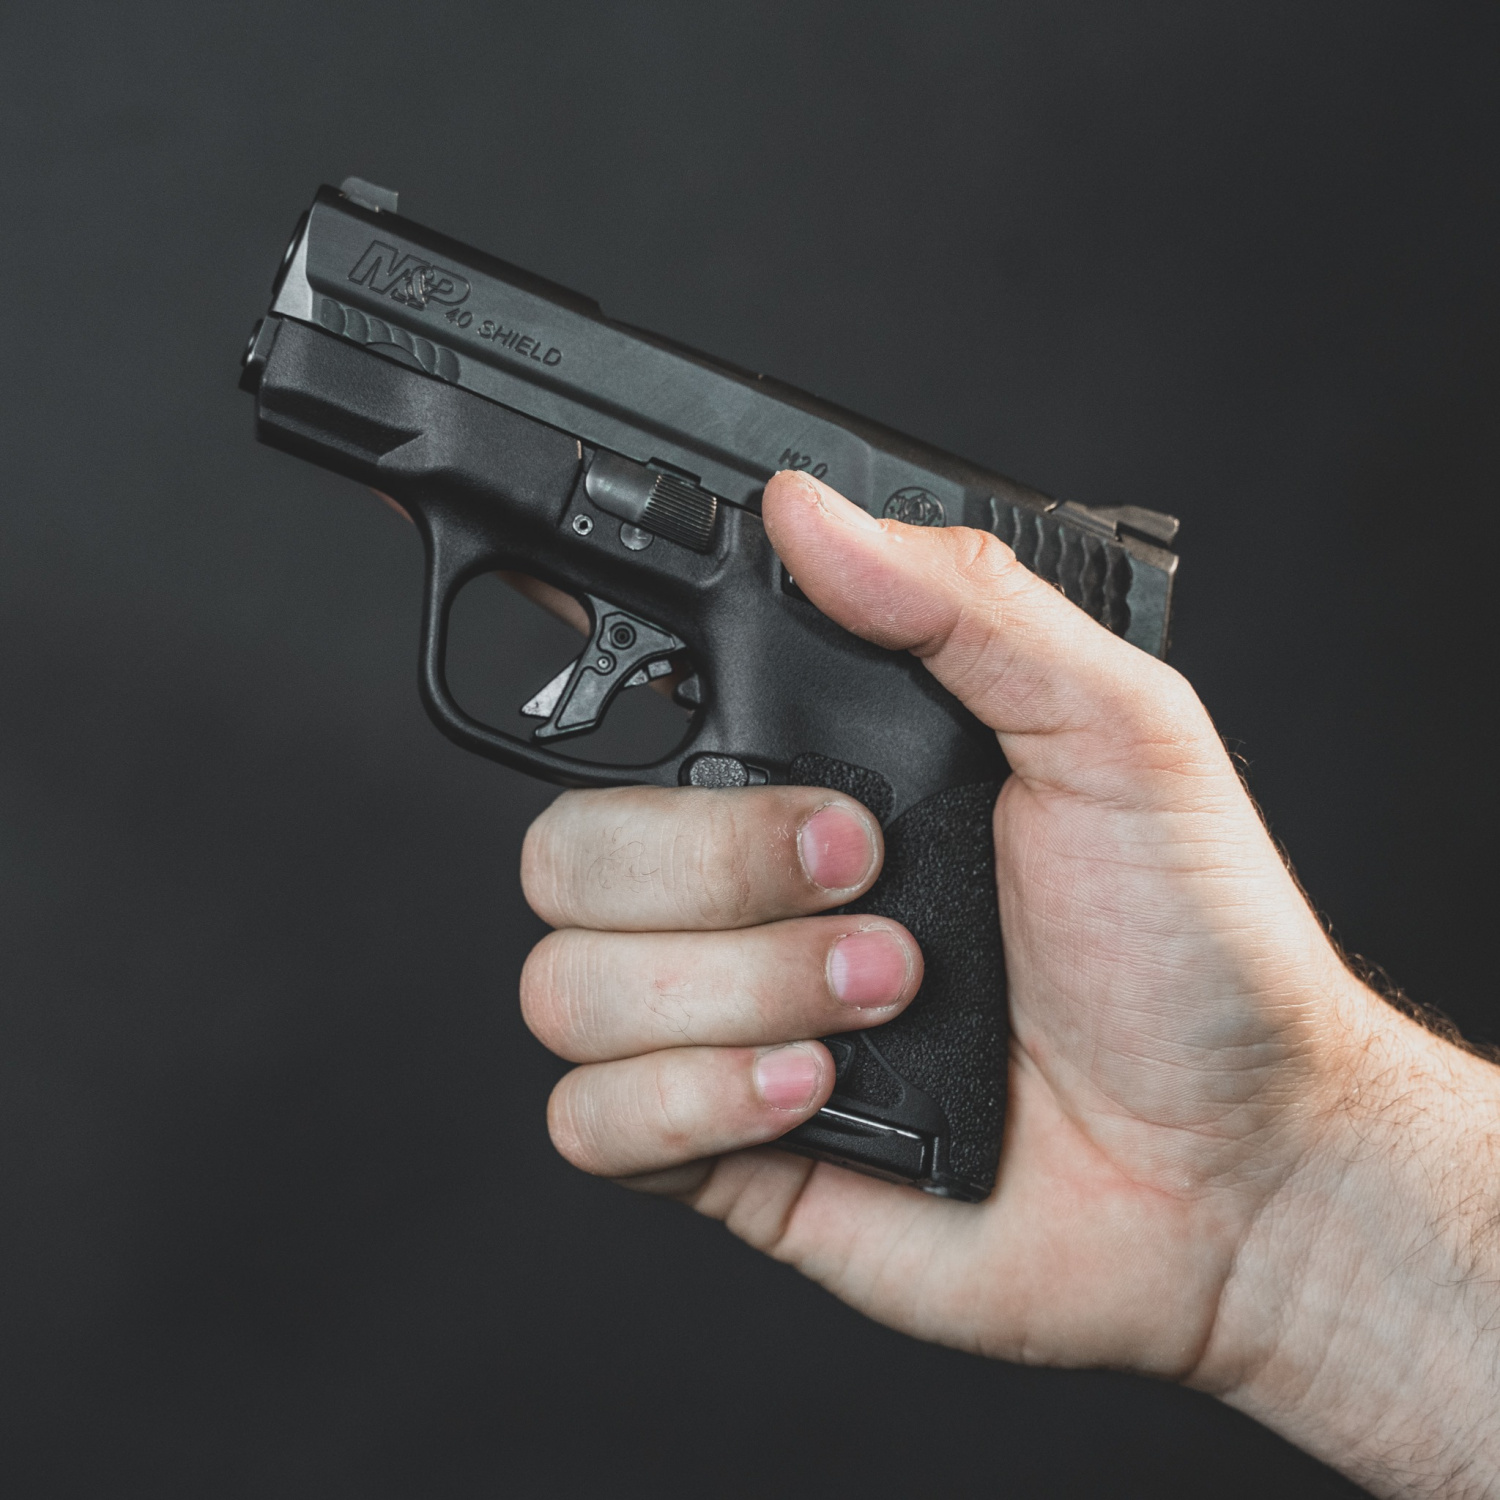 Overwatch Precision's TAC trigger installed in an M&P Shield.